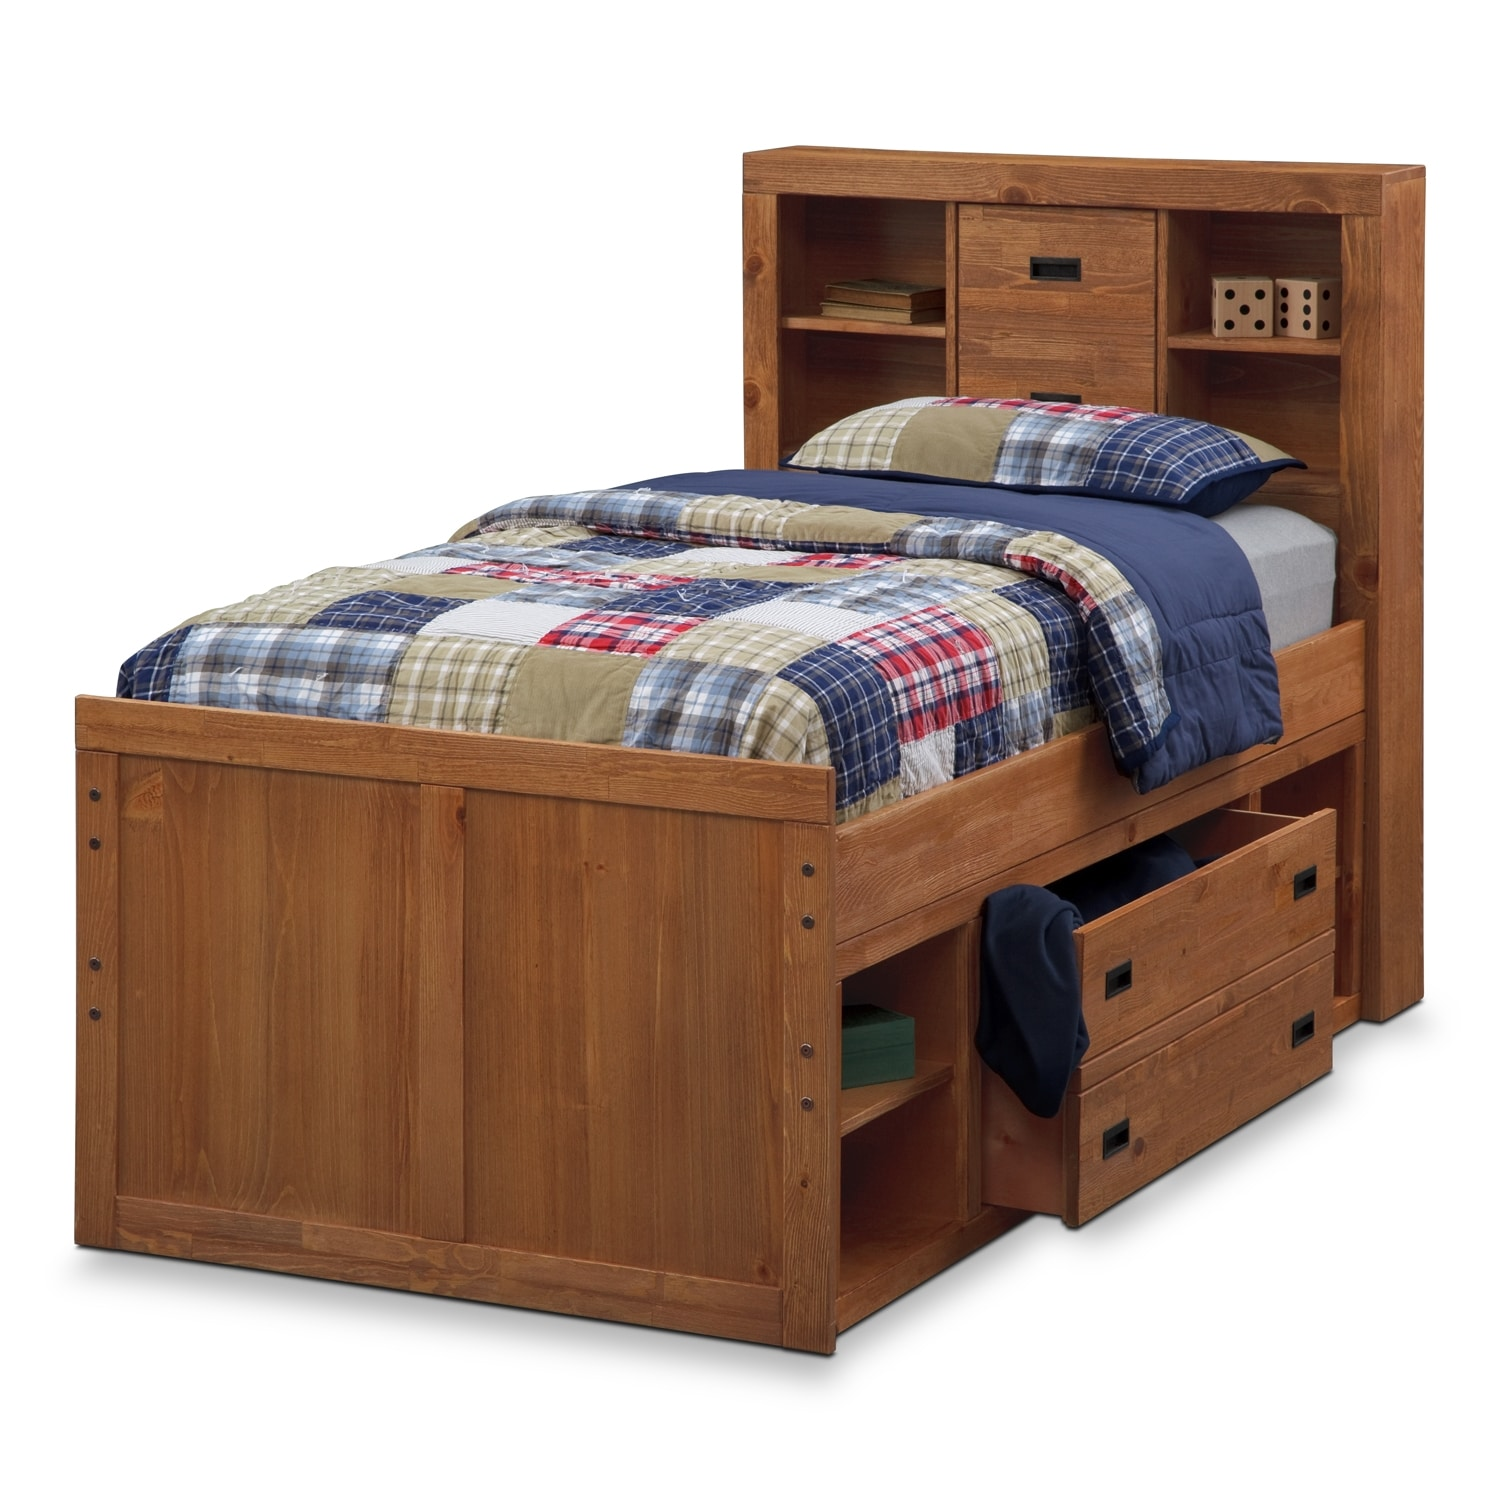 Alpine captain kids furniture full bed value city furniture Captains bed full